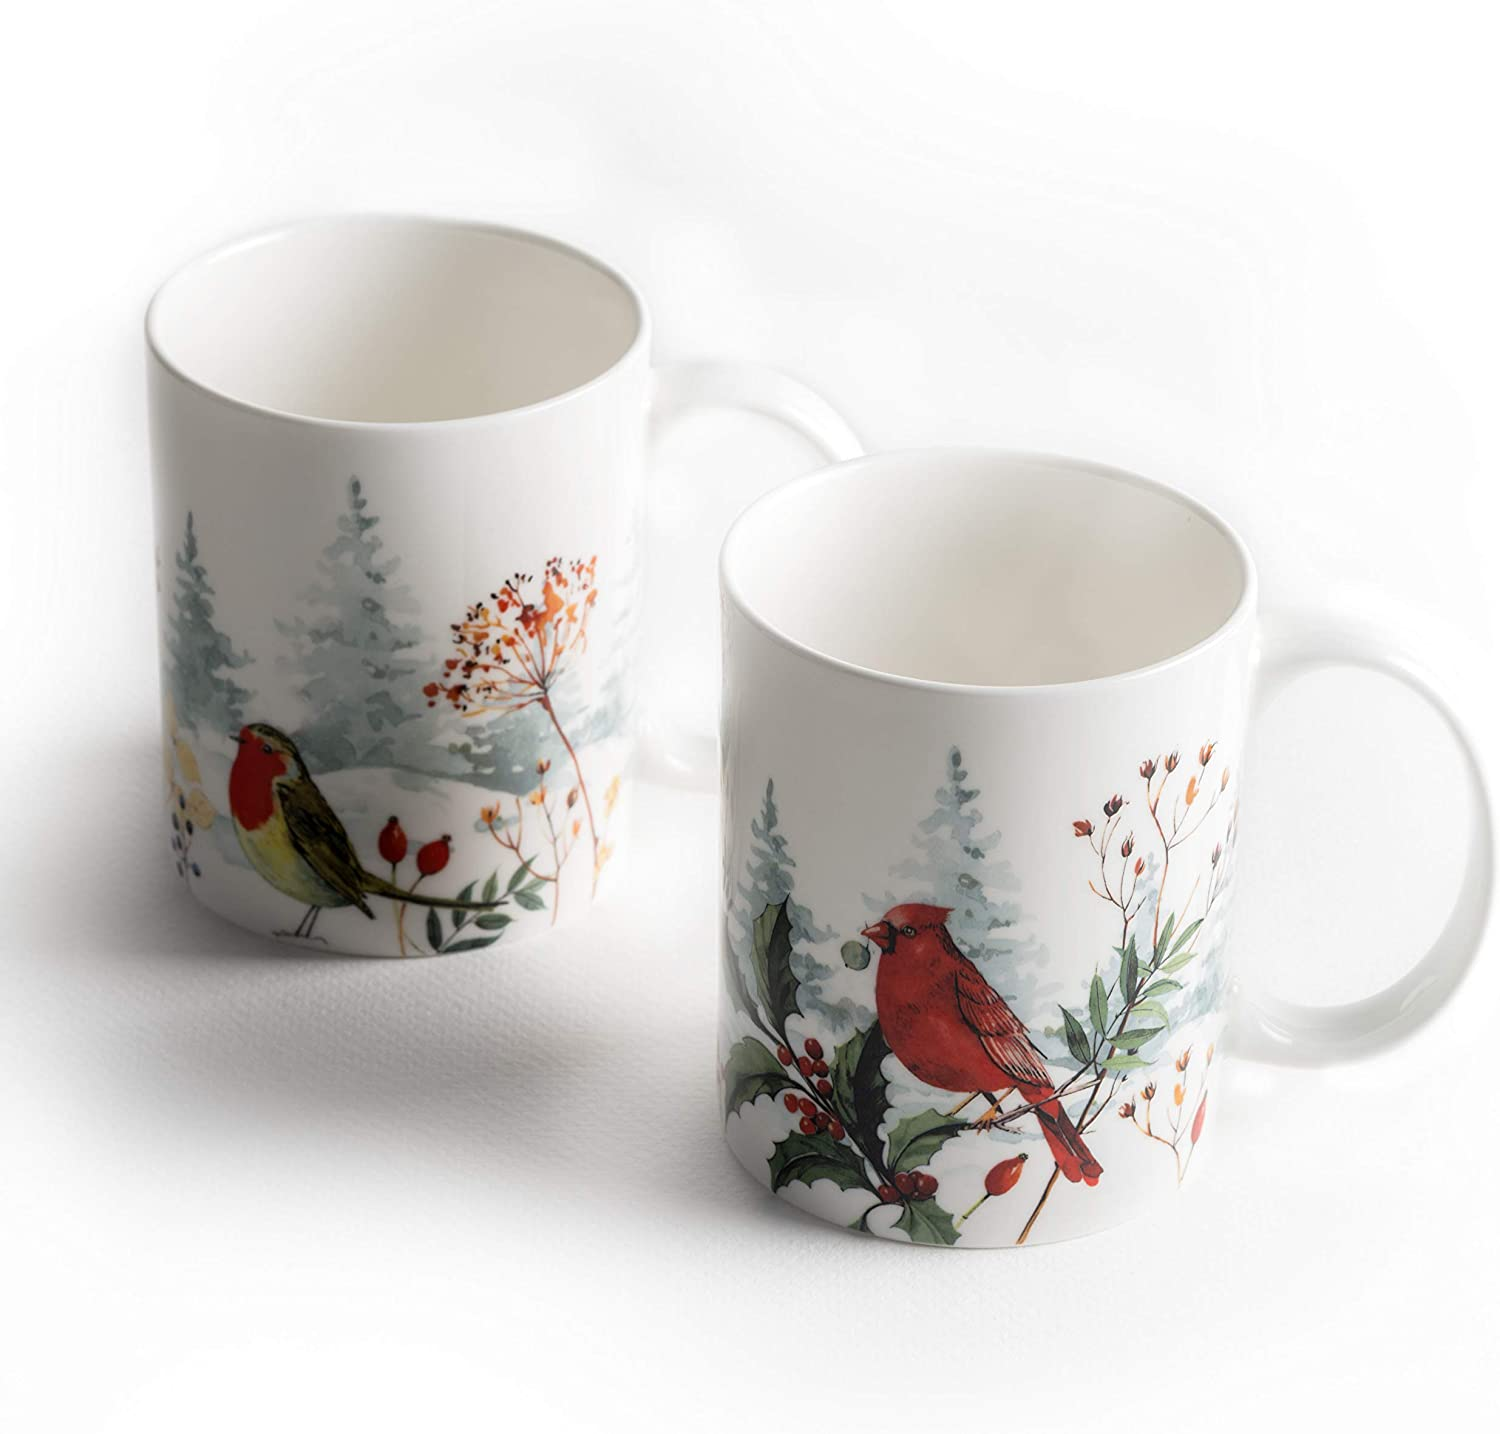 Maison d' Hermine Morzine Fine Bone China Coffee Mug Perfect for Coffee|Cappuccino|Latte|Cocoa|Tea & Home Gifts (Pack of Two, 12 Ounce)